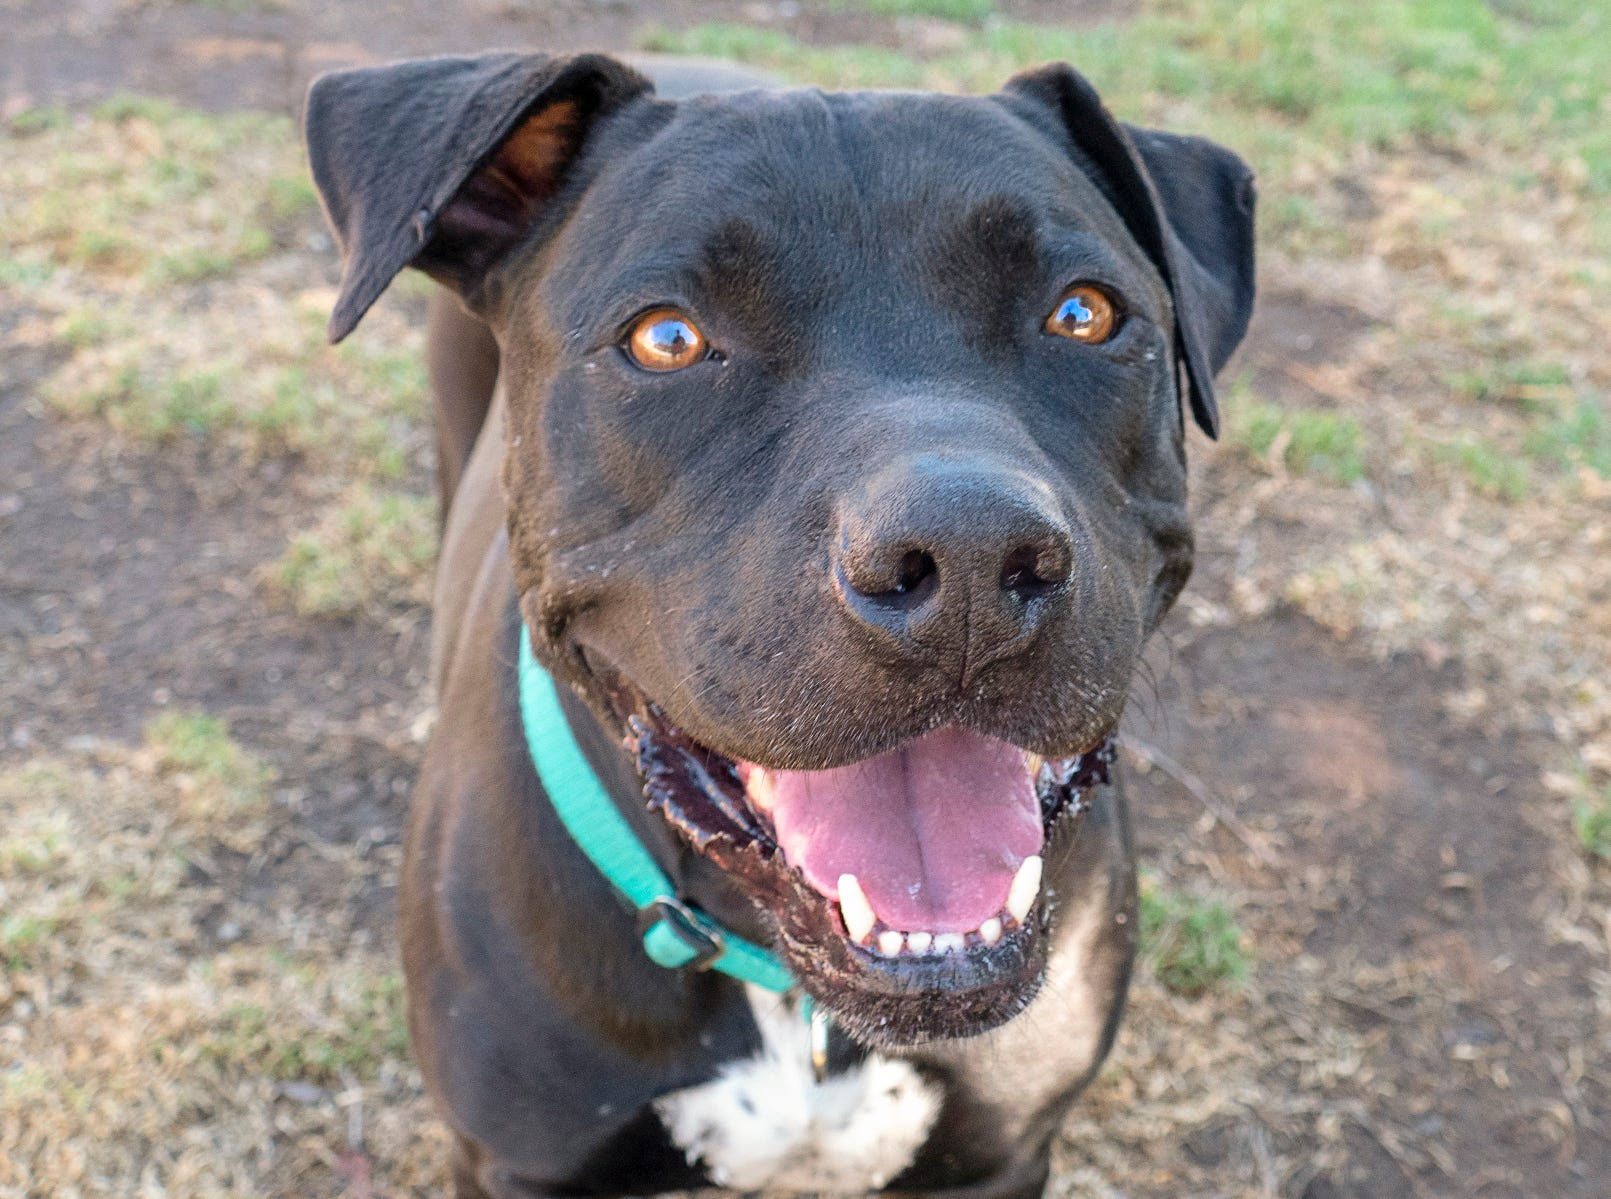 When Smokey interacts with people, he is awesome, sweet, loving and attentive and demonstrates good behavior with kids. He sits down for belly rubs and wants to give kisses.He is a really good couch potato companion, loves a stuffed Kong, and truly loves, loves humans.To adopt Smokey, request A5149826. The Agoura Hills Animal Care Center is at 29525 Agoura Road, Agoura Hills. Occasionally, pets have already been adopted. To check availability, call 818-991-0071 or visit animalcare.lacounty.gov.